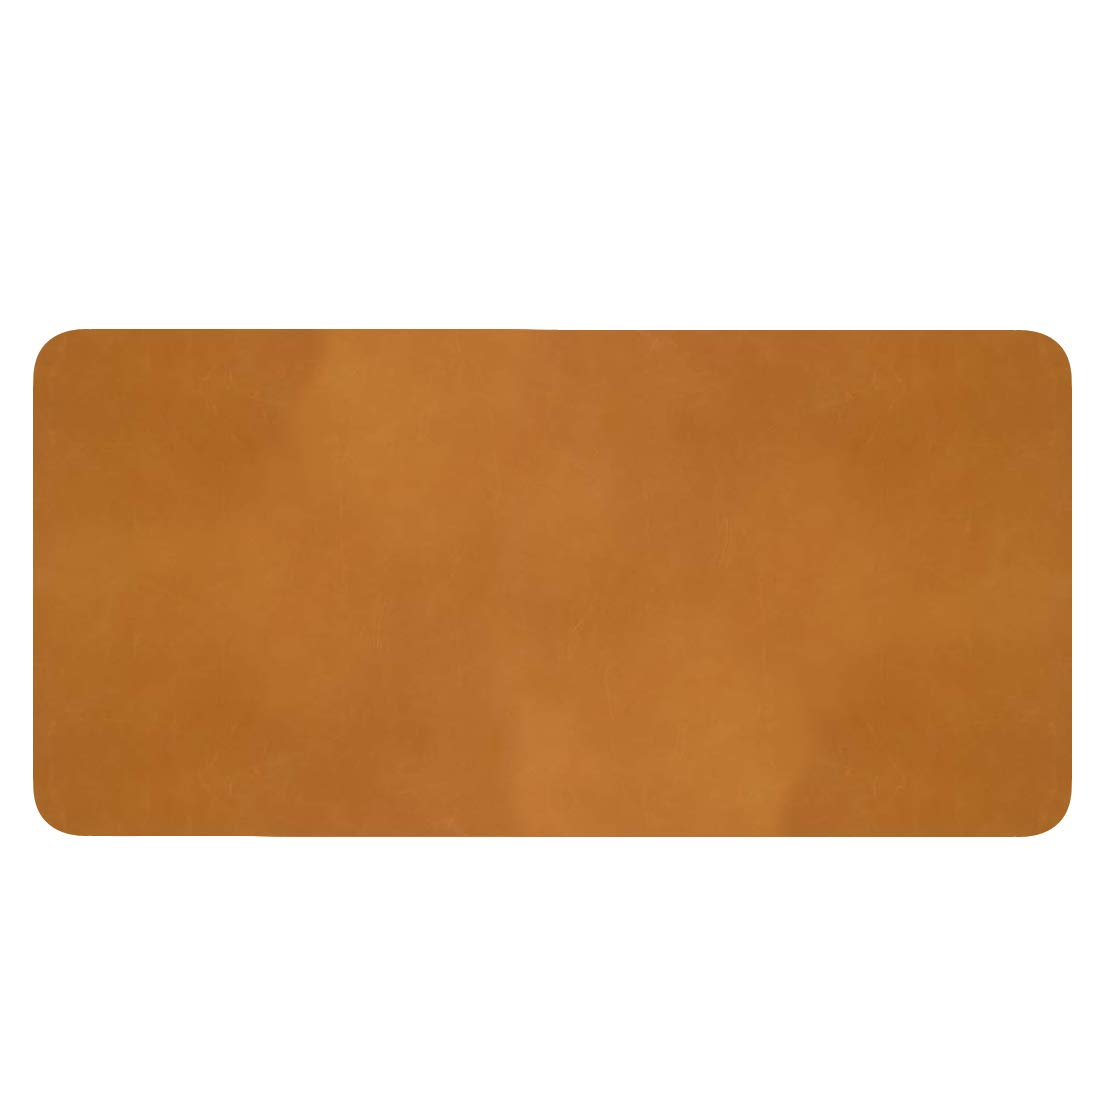 Thick Leather Square (10 x 18 in.) for Crafts/Tooling/Hobby Workshop, Heavy Weight (3.5mm) by Hide & Drink :: Old Tobacco